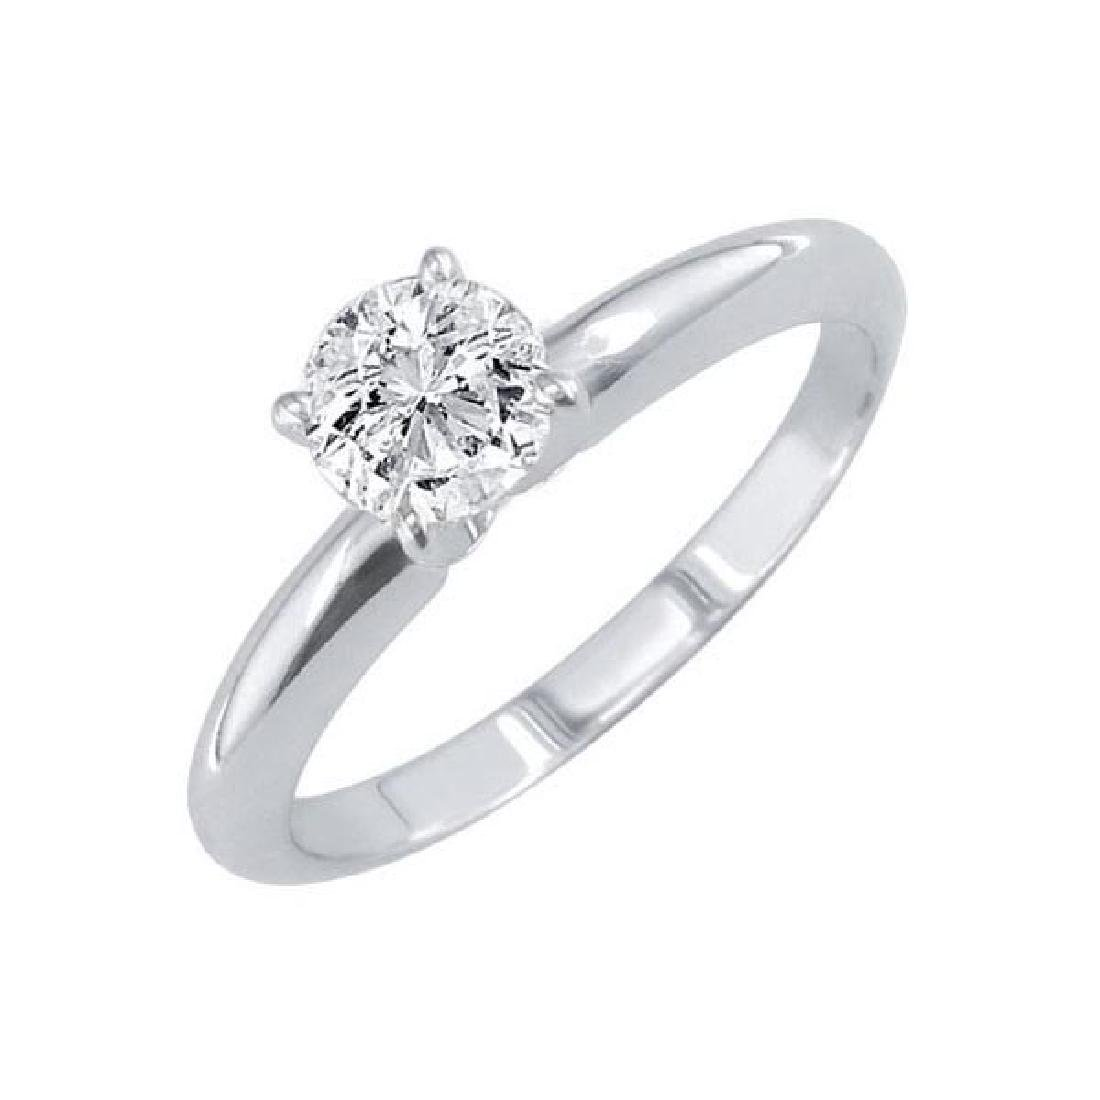 Certified 0.71 CTW Round Diamond Solitaire 14k Ring E/I